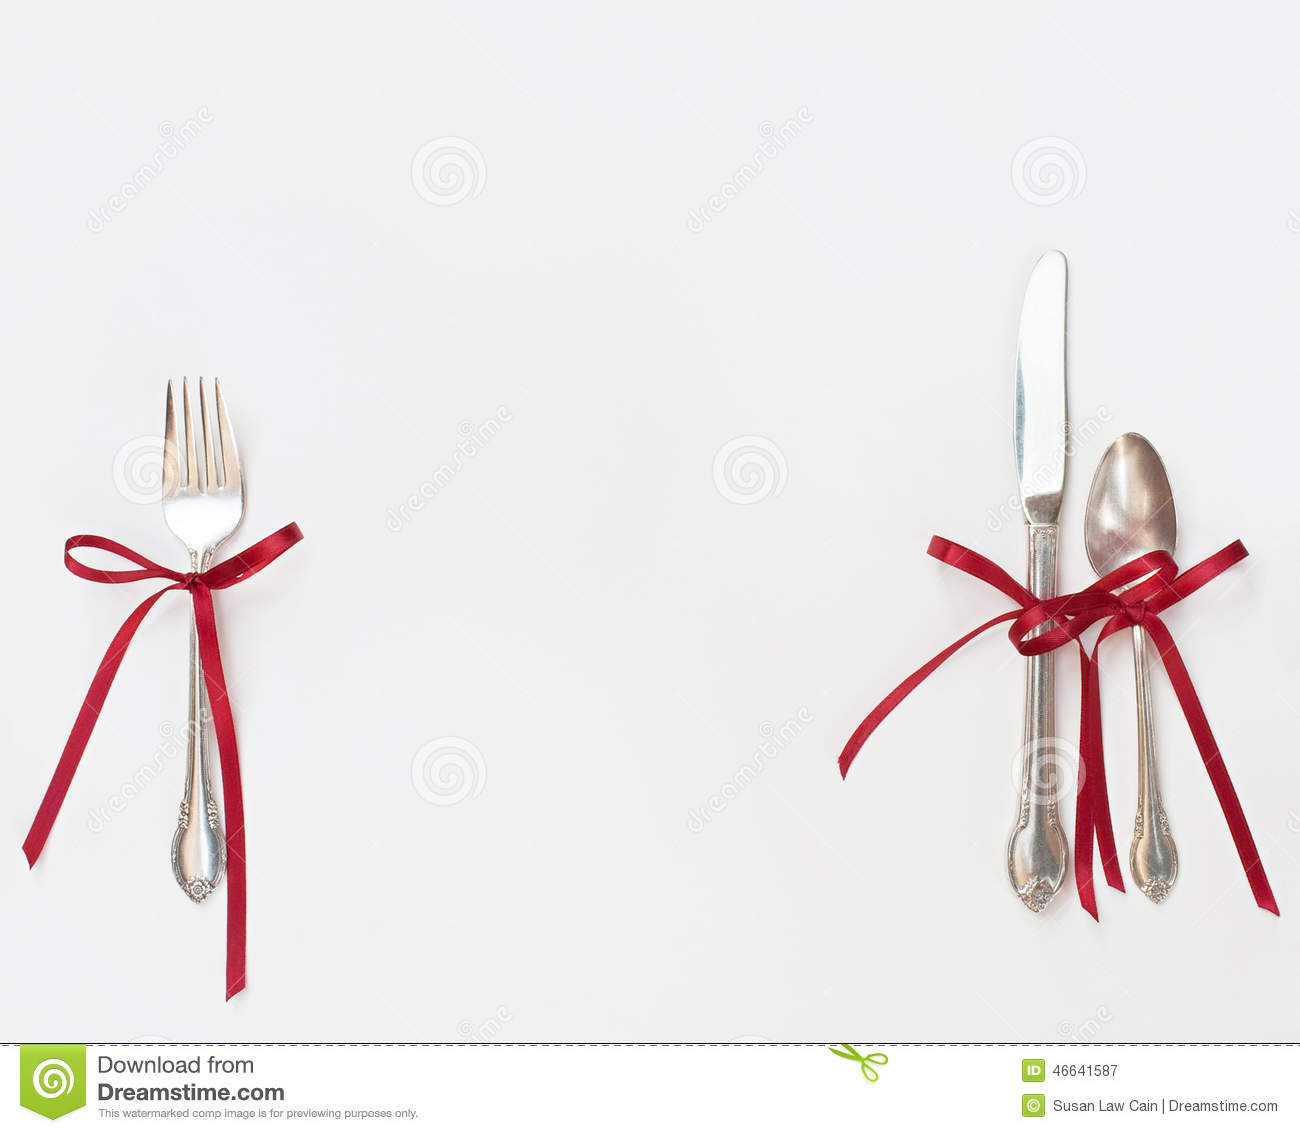 Silverware With Red Bows Stock Photo Image 46641587